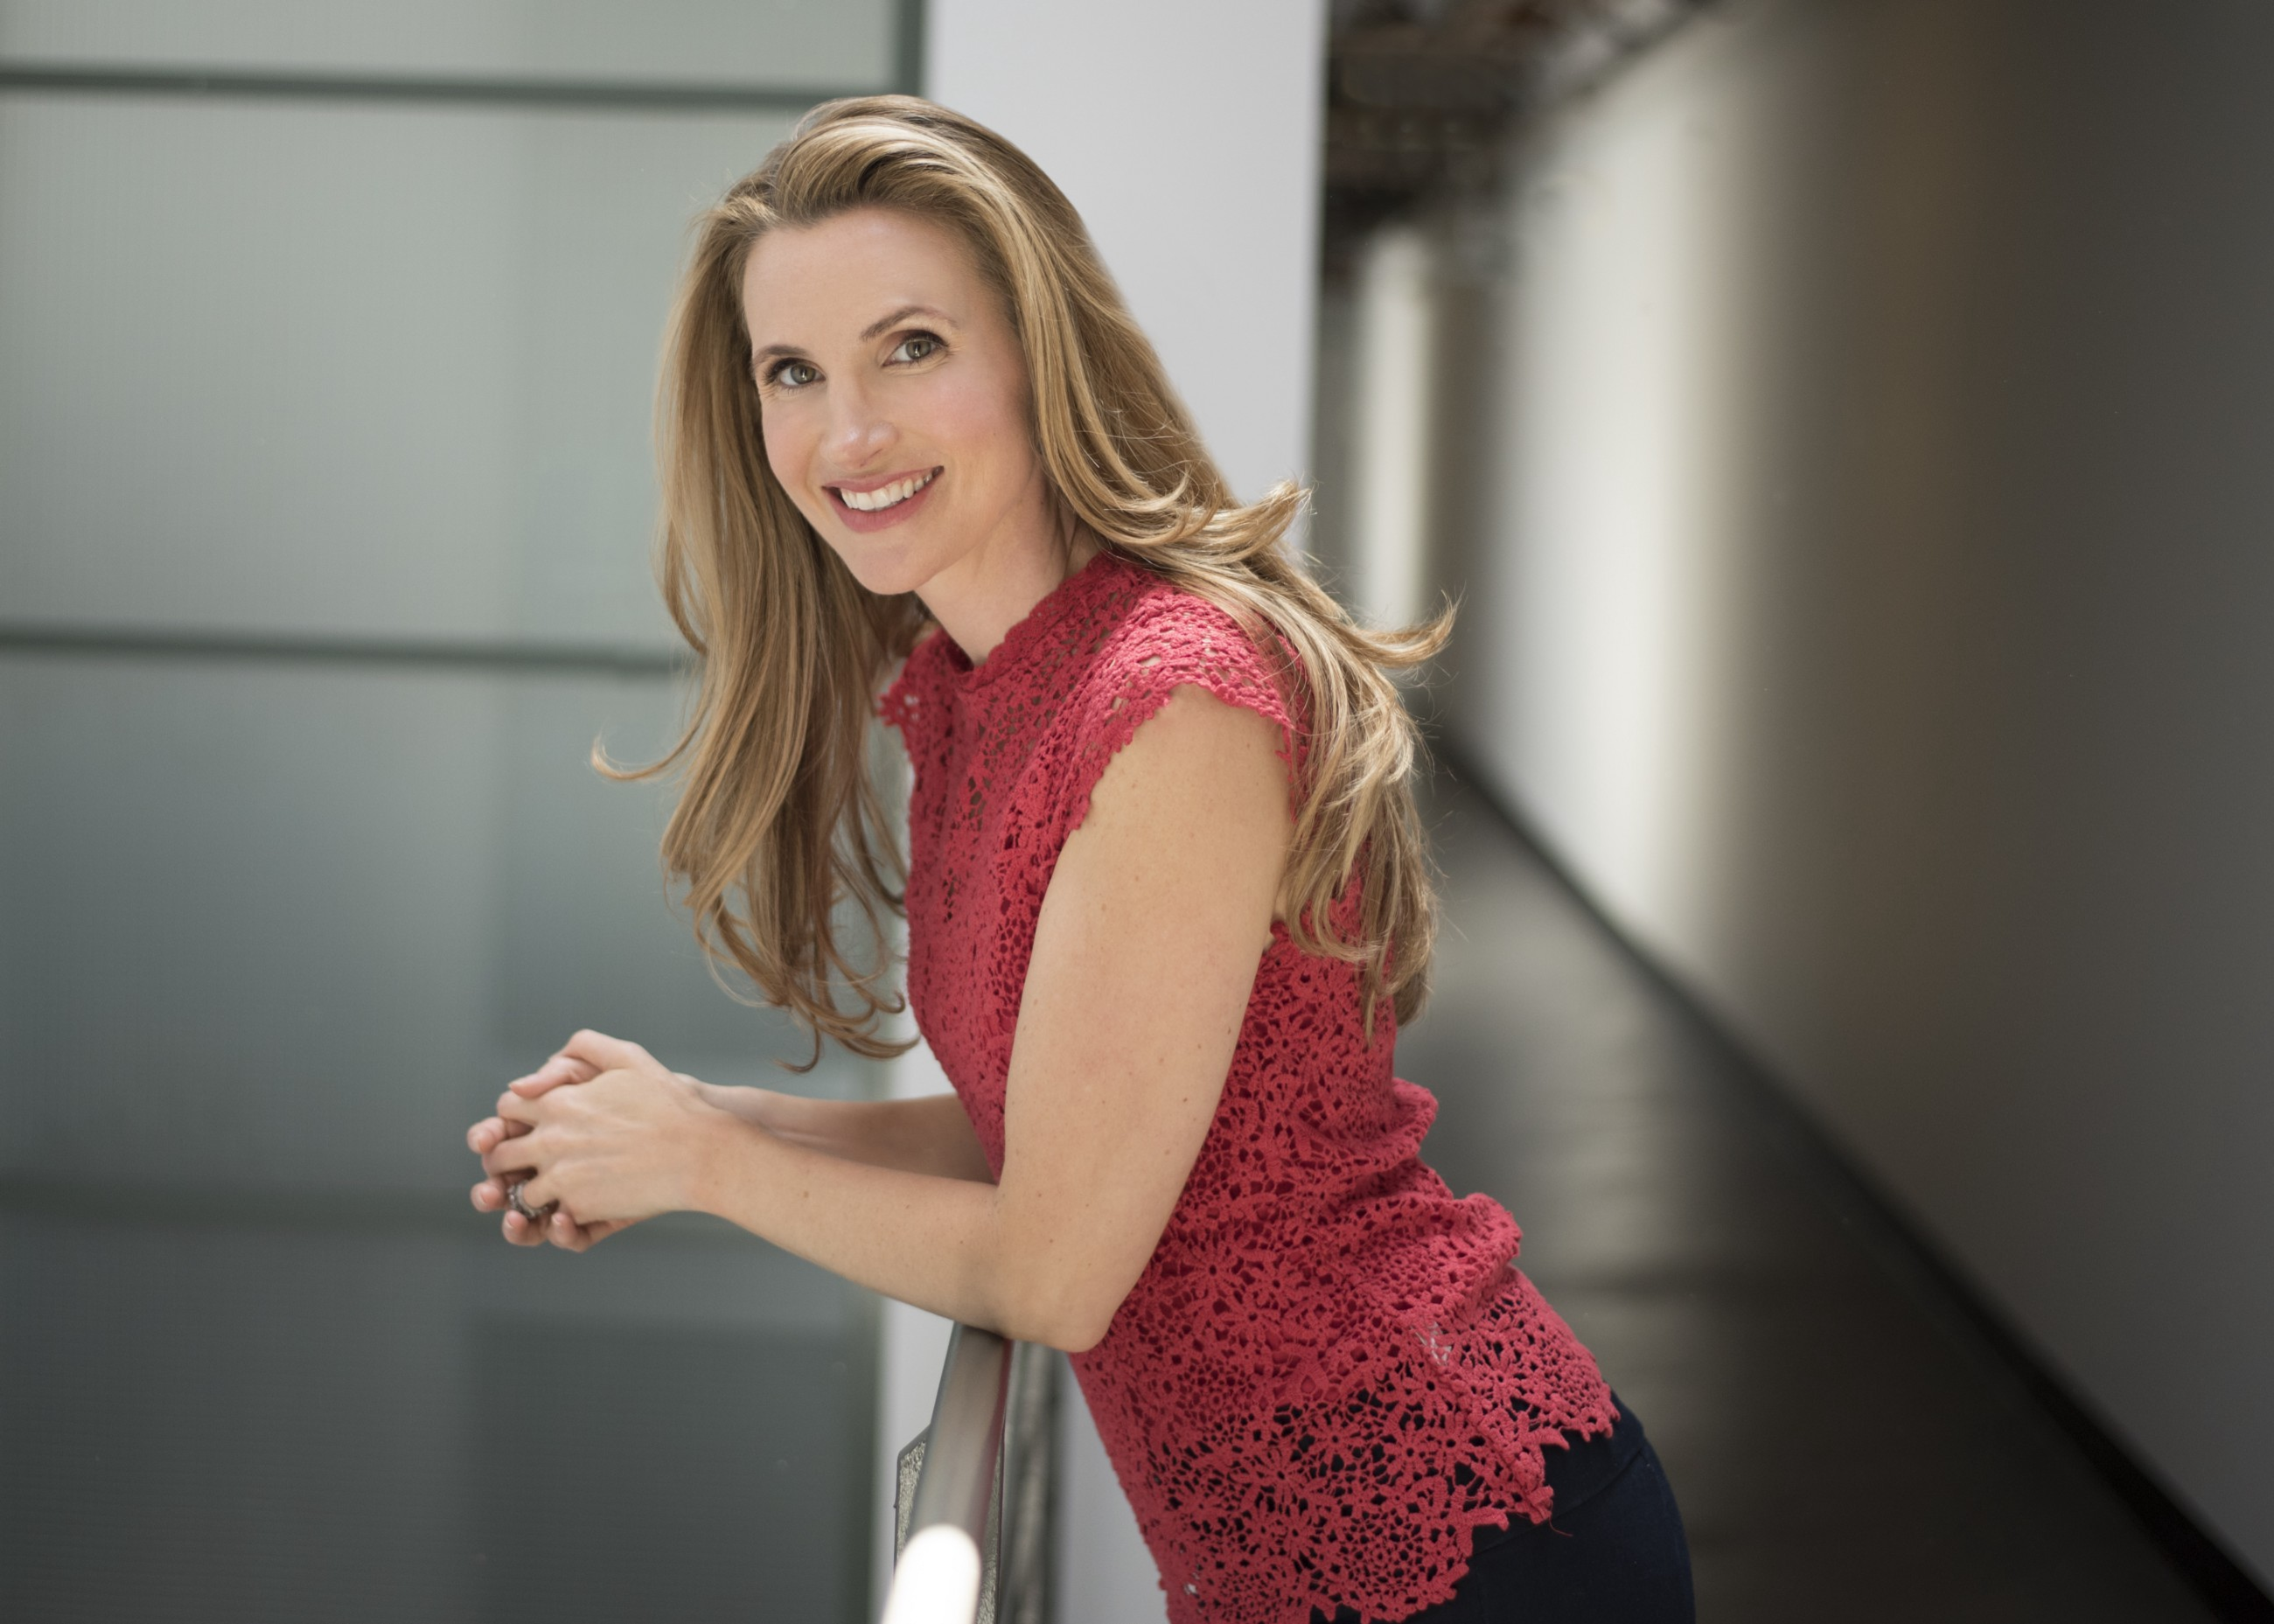 Female Disruptors Sarah Mehler Is Shaking Up How To Creatively Solve Social Problems